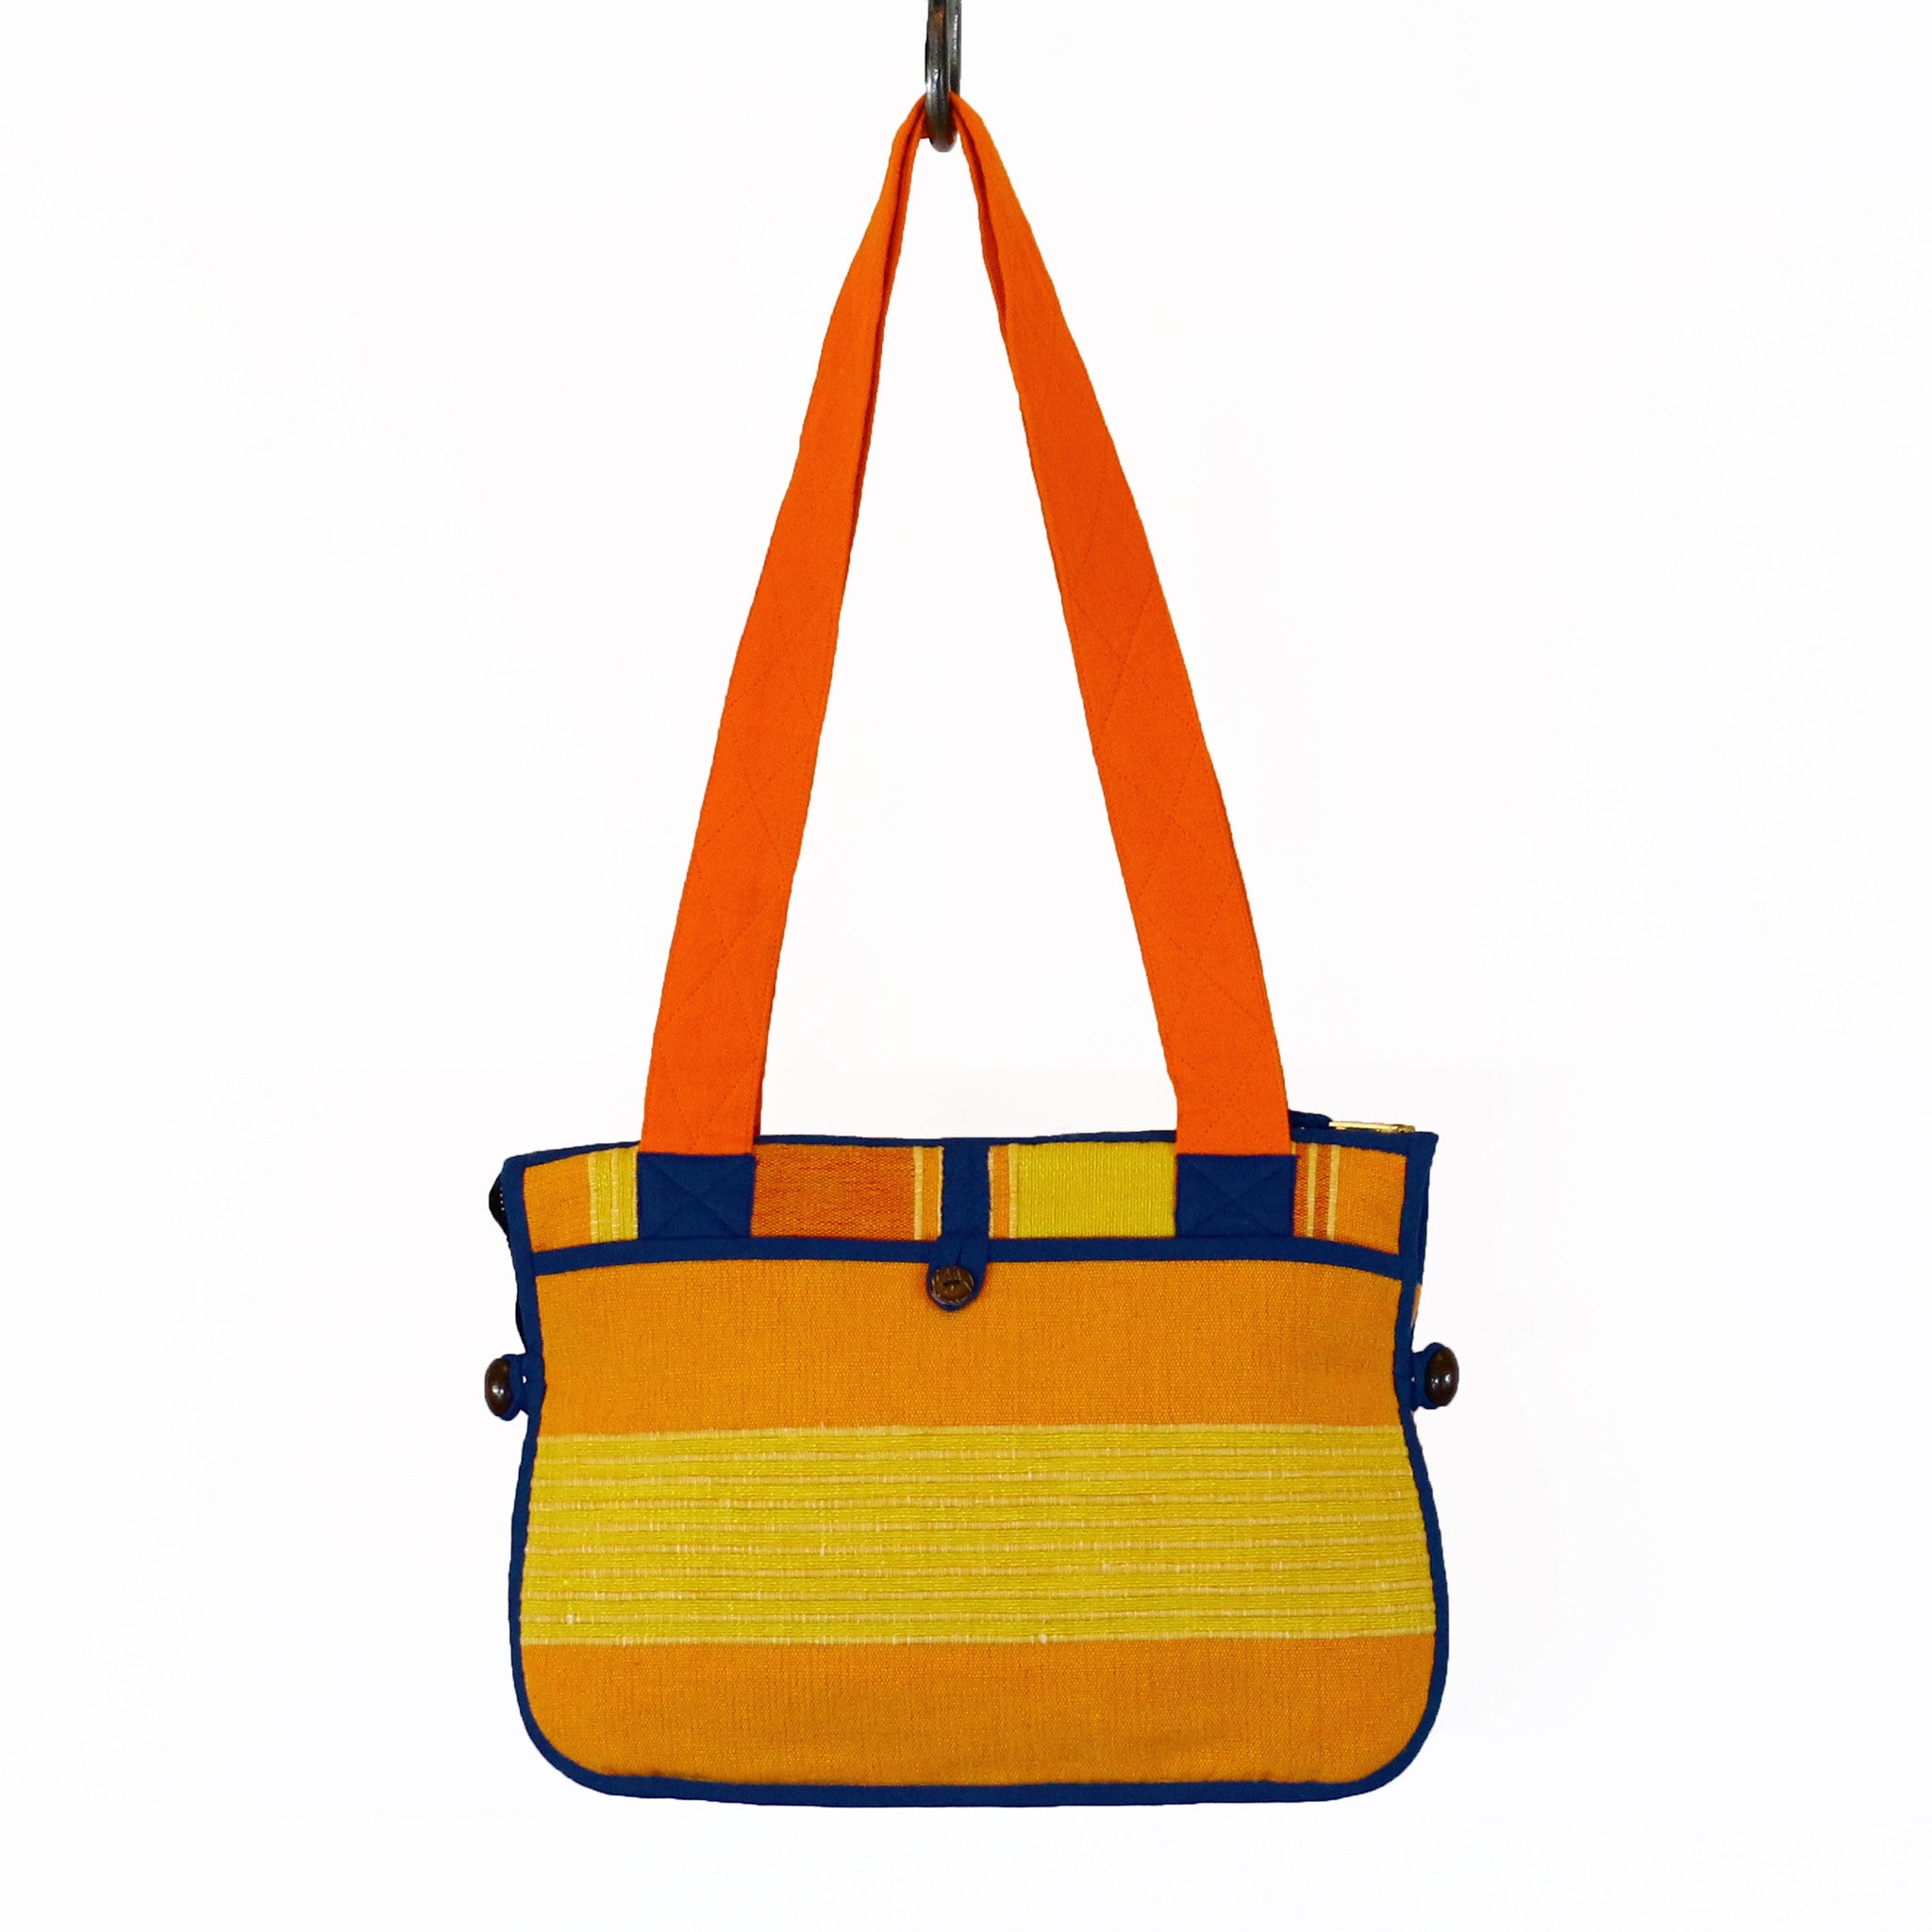 Barefoot Handwoven Expandable Shoulder Bag - Starburst fabric shown